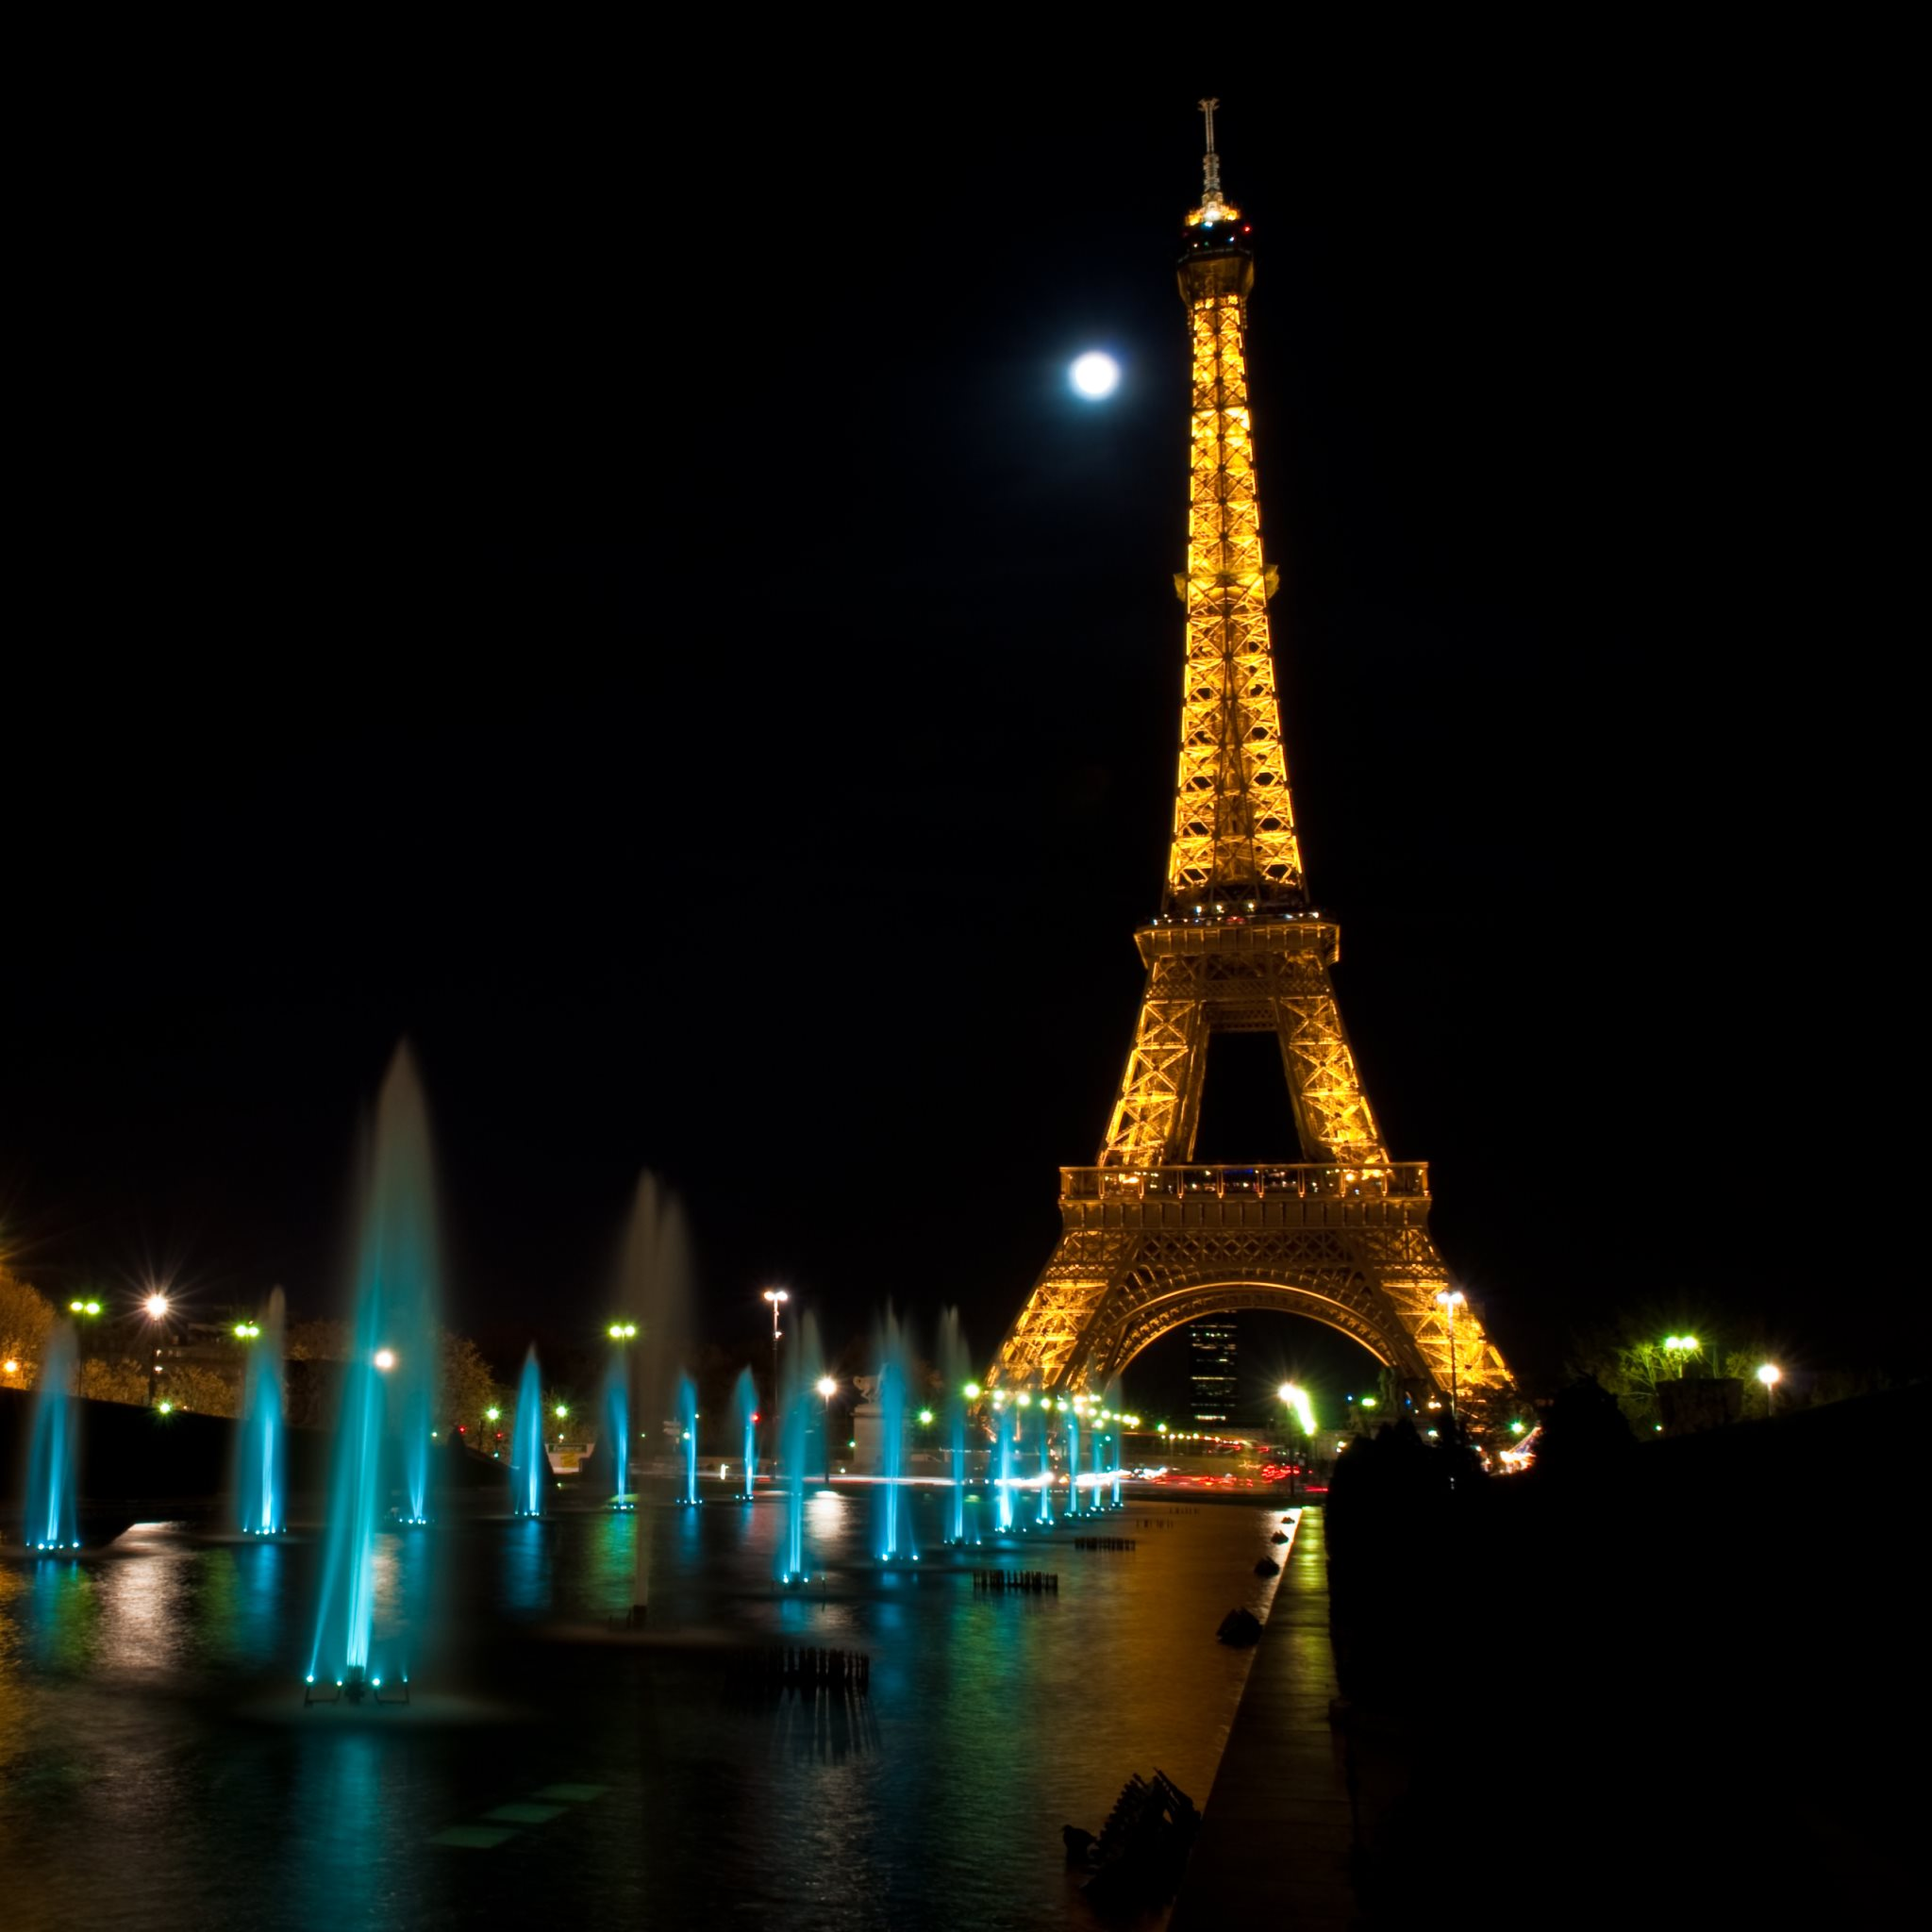 Wallpaper 4k For Phone Iphone X Paris At Night Tour Eiffel Hd Wallpapers 4k Macbook And